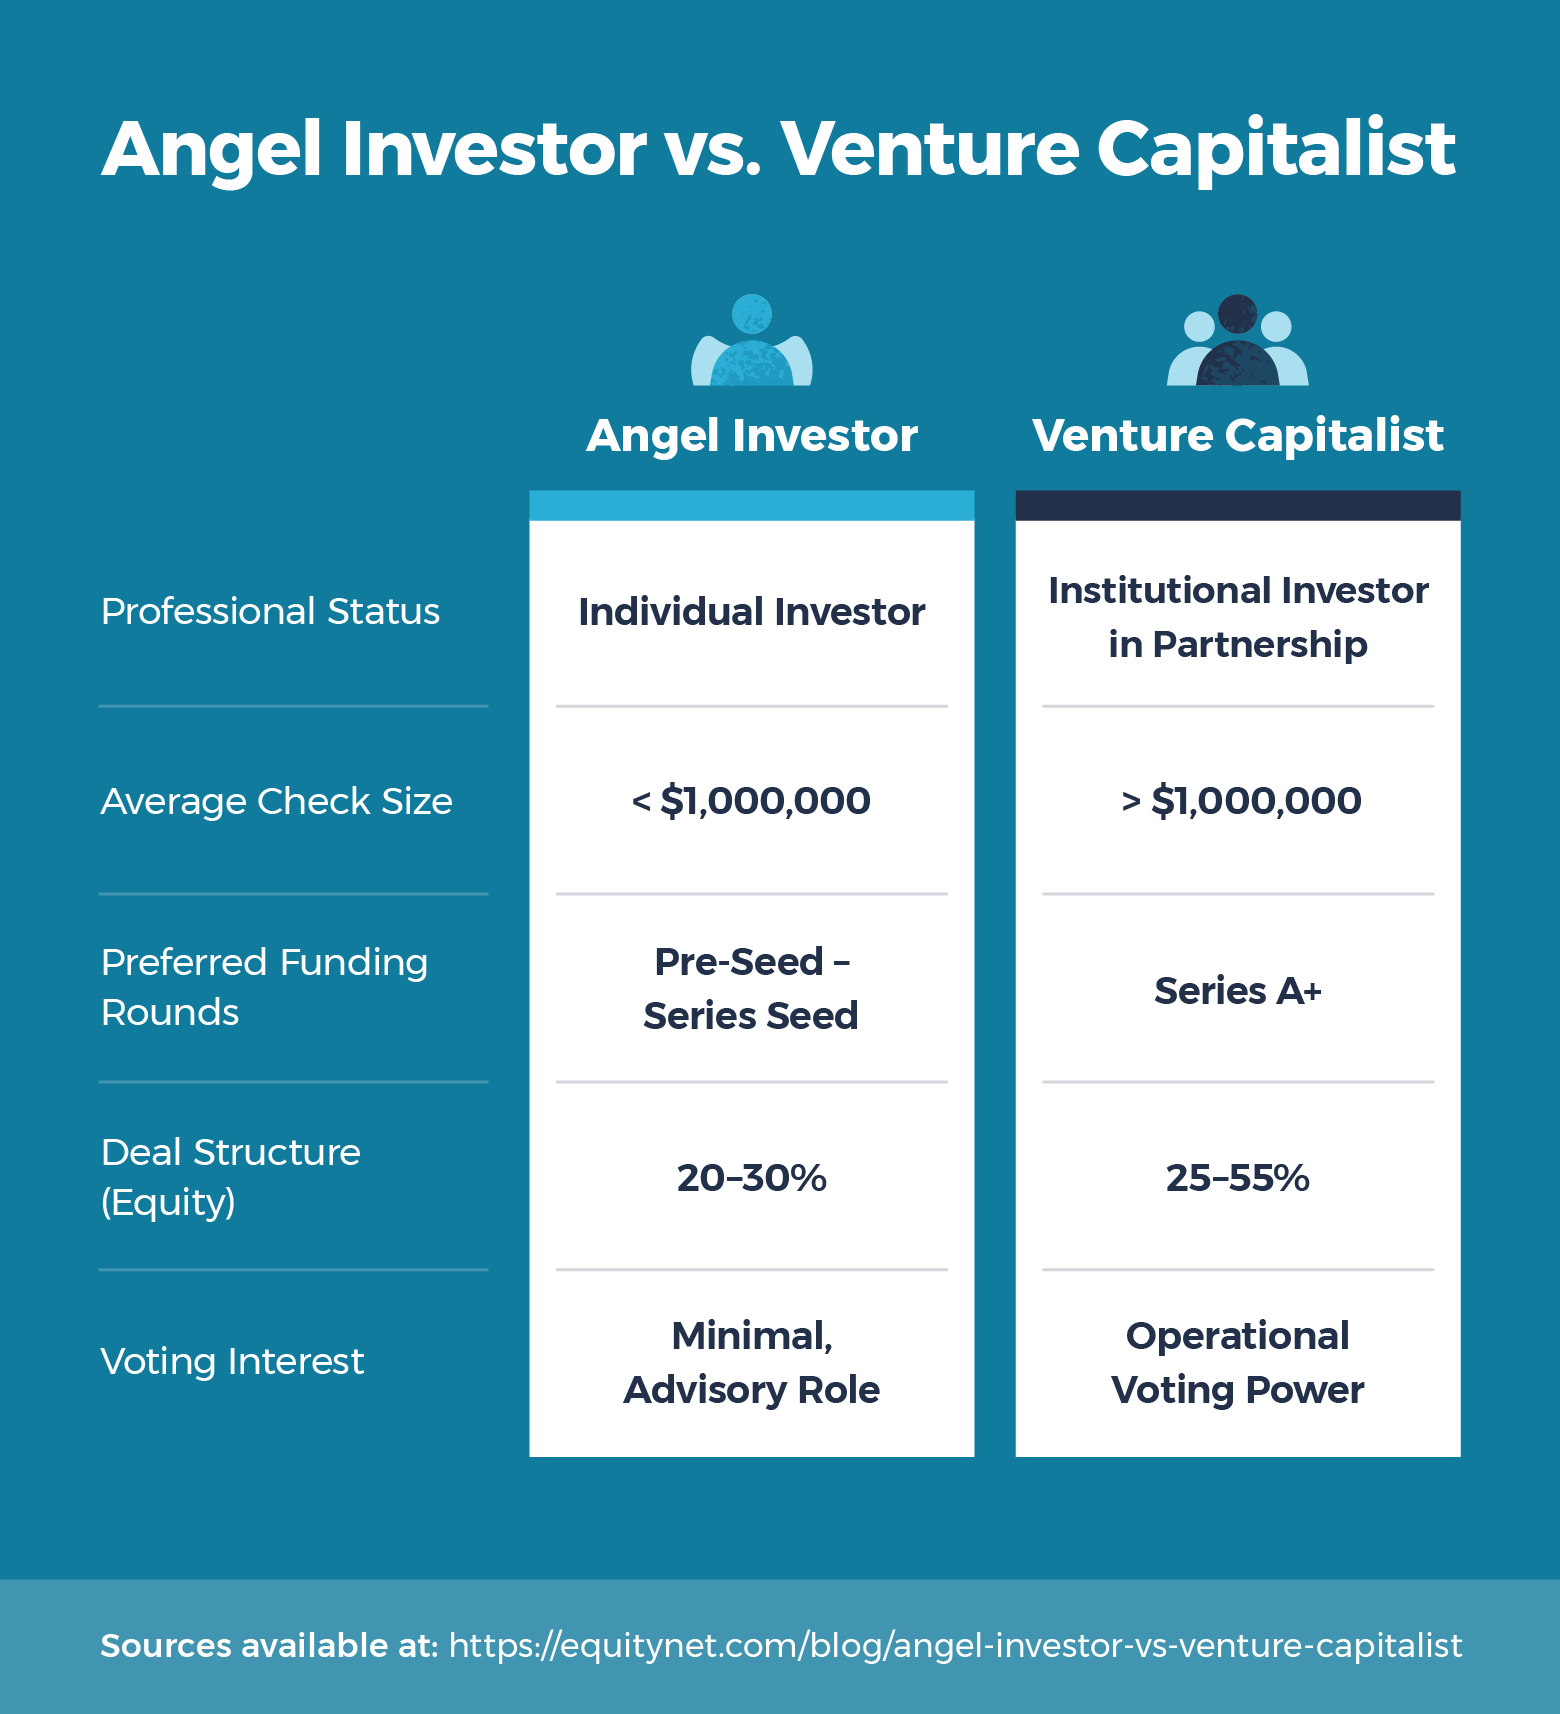 chart comparing angel investors vs venture capitalists on funding amounts, equity, voting rights, and more